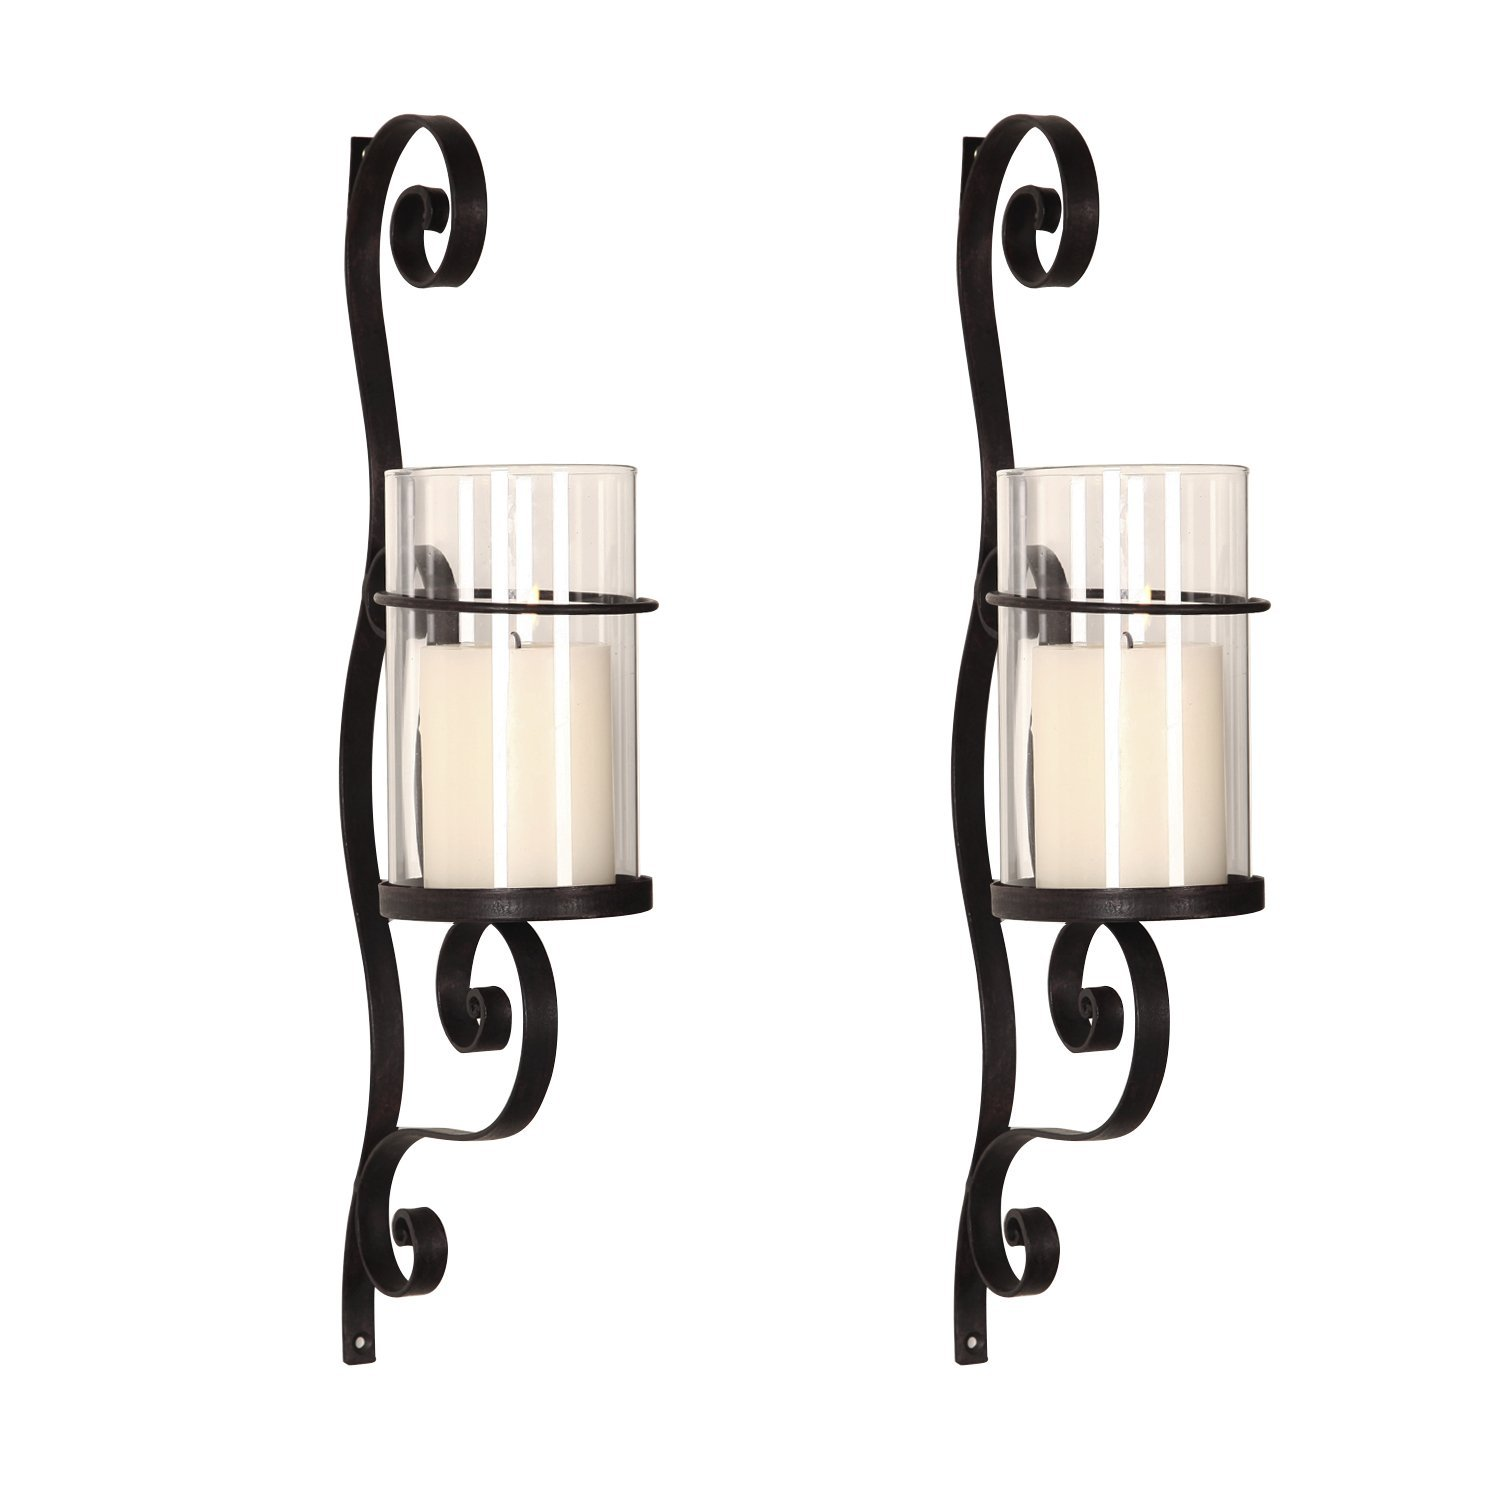 DecentHome Candle Holder Sets, Set of 2 (3D Scroll)